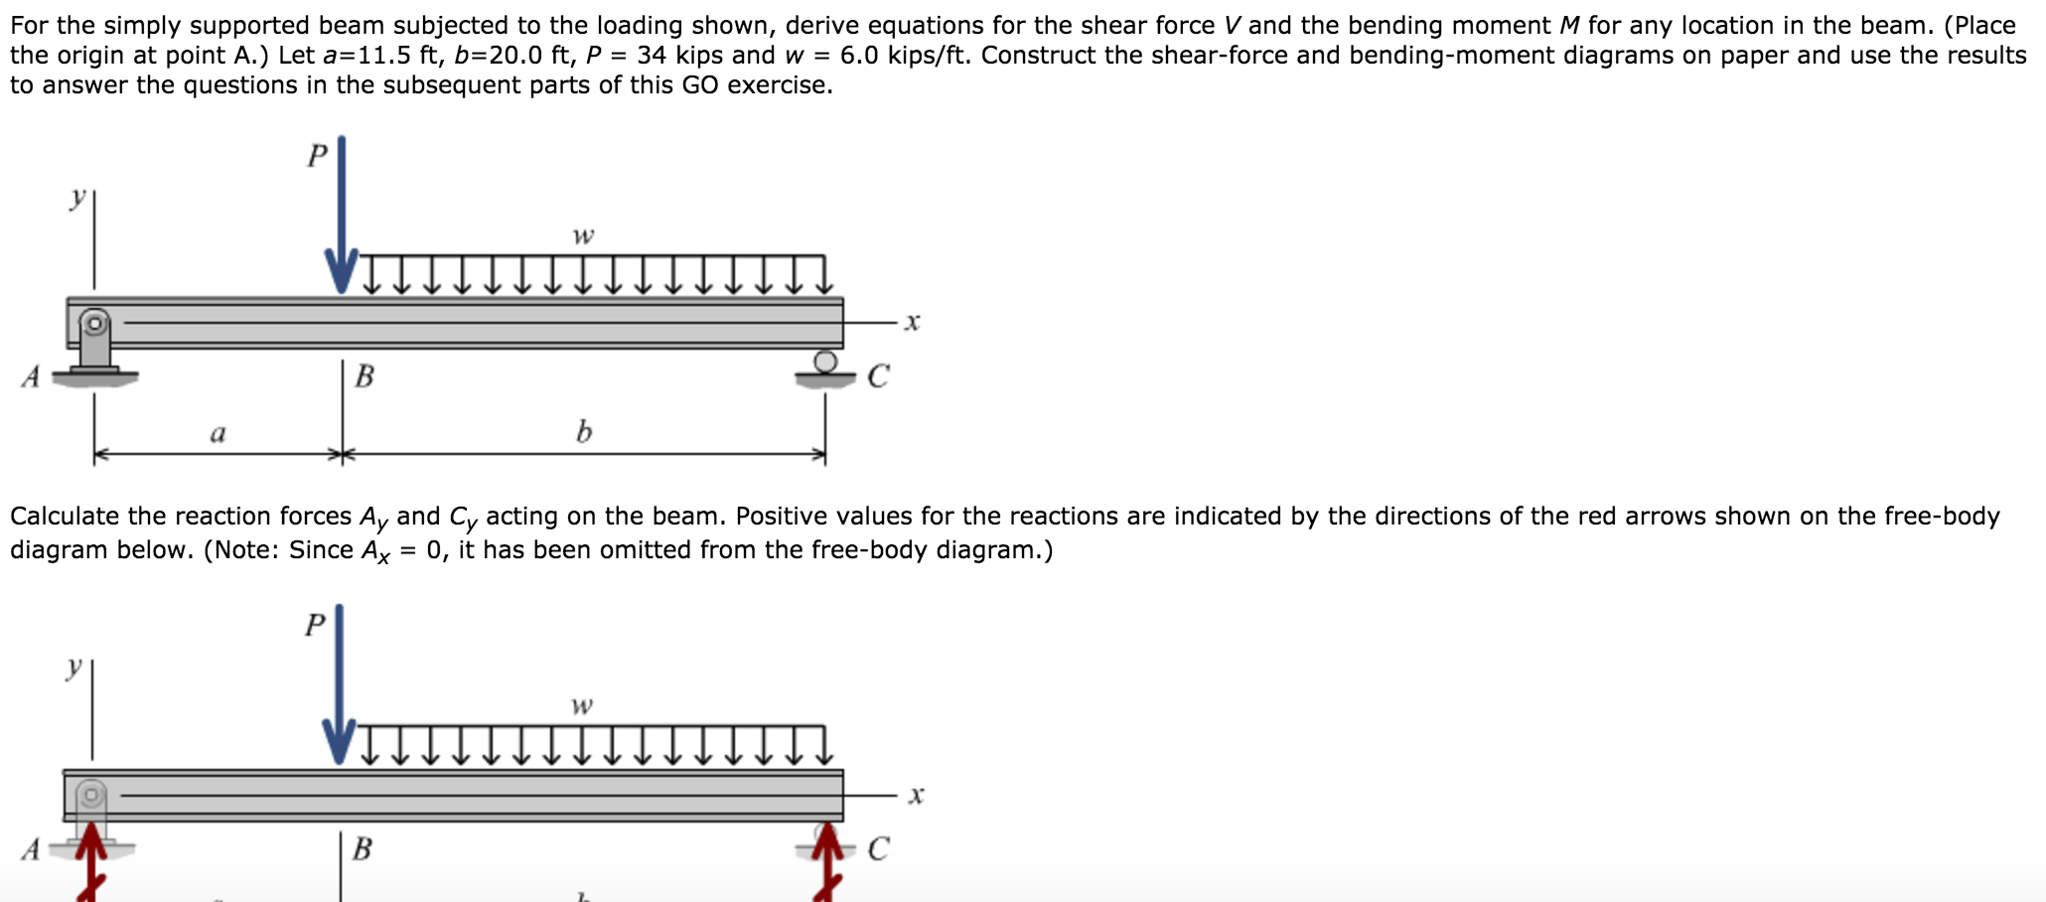 Bending Moment Diagram Equations Beam Loading For The Simply Supported Subjected To Shown Derive Shear